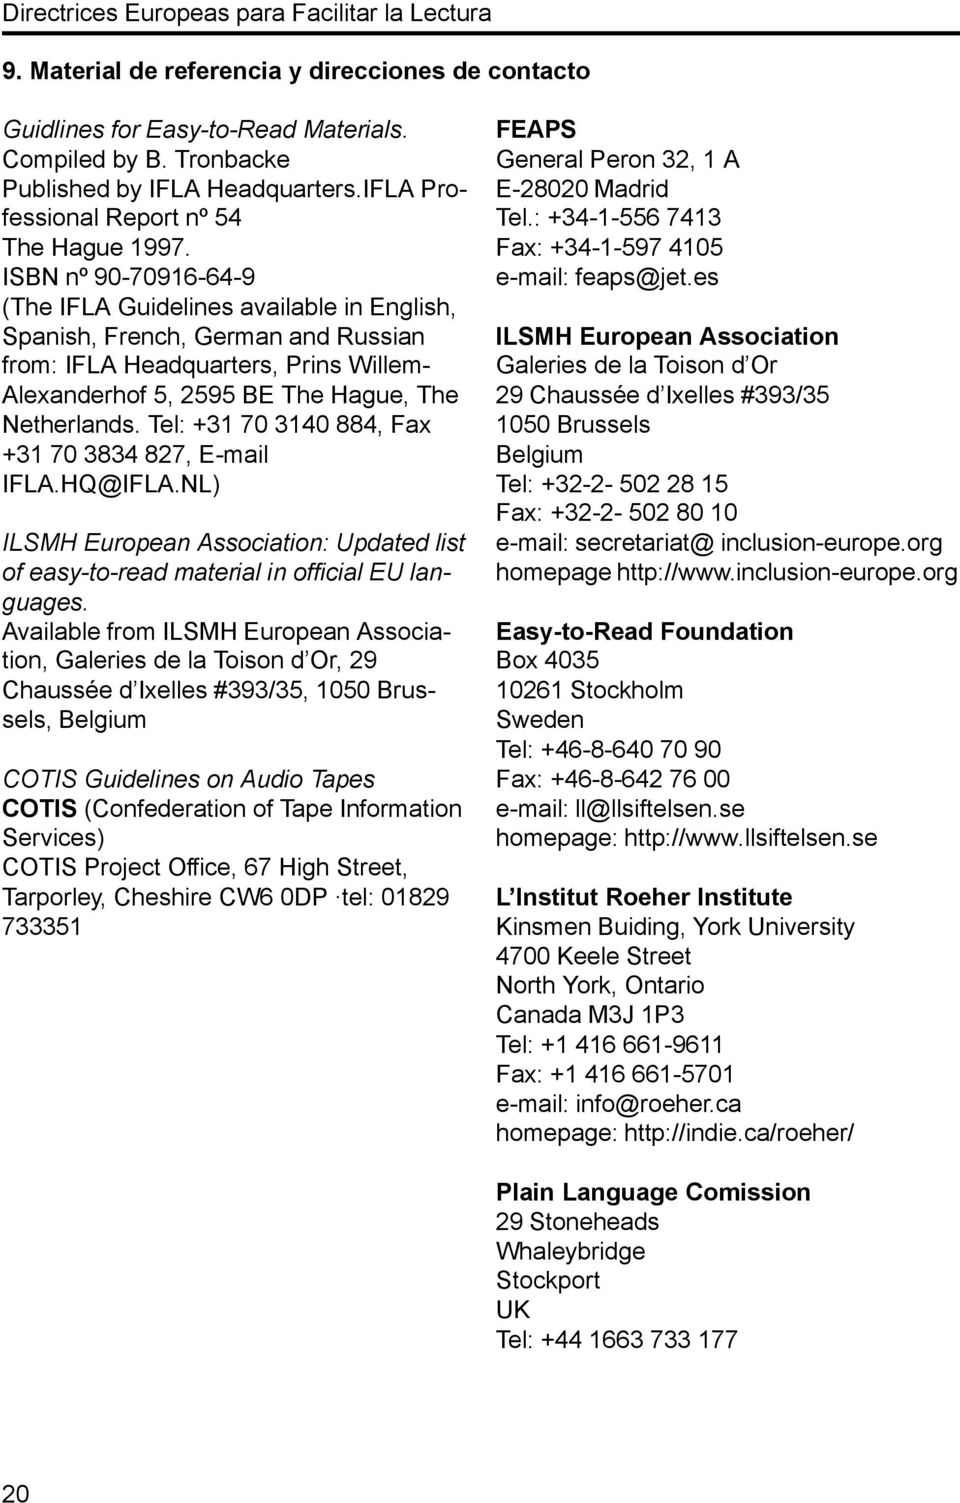 Tel: +31 70 3140 884, Fax +31 70 3834 827, E-mail IFLA.HQ@IFLA.NL) ILSMH European Association: Updated list of easy-to-read material in official EU languages.